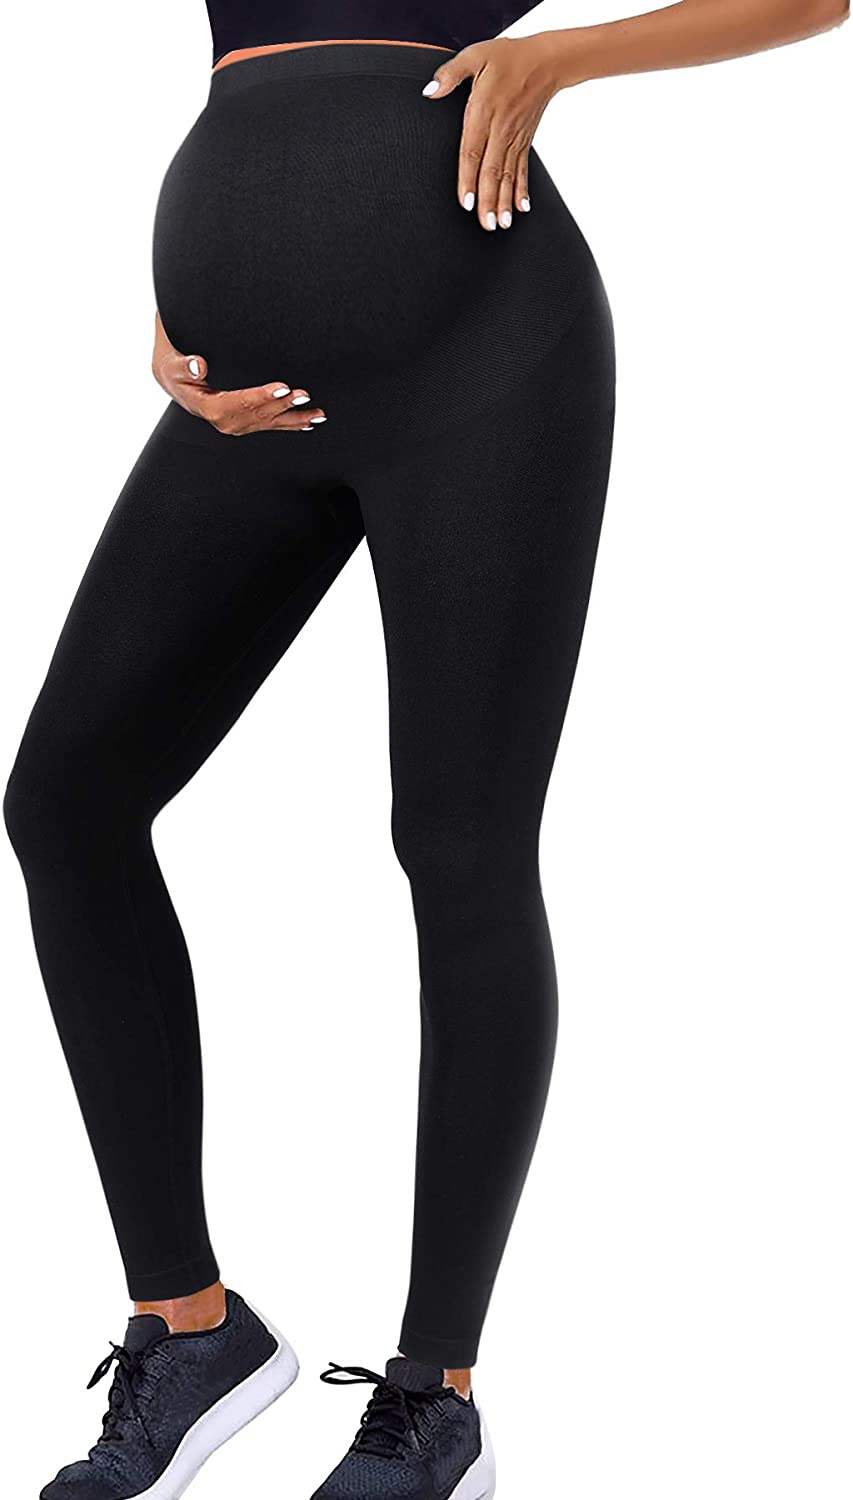 Irisnaya Maternity Leggings for Brand new Women Support Pregnancy Belly ! Super beauty product restock quality top! Pa